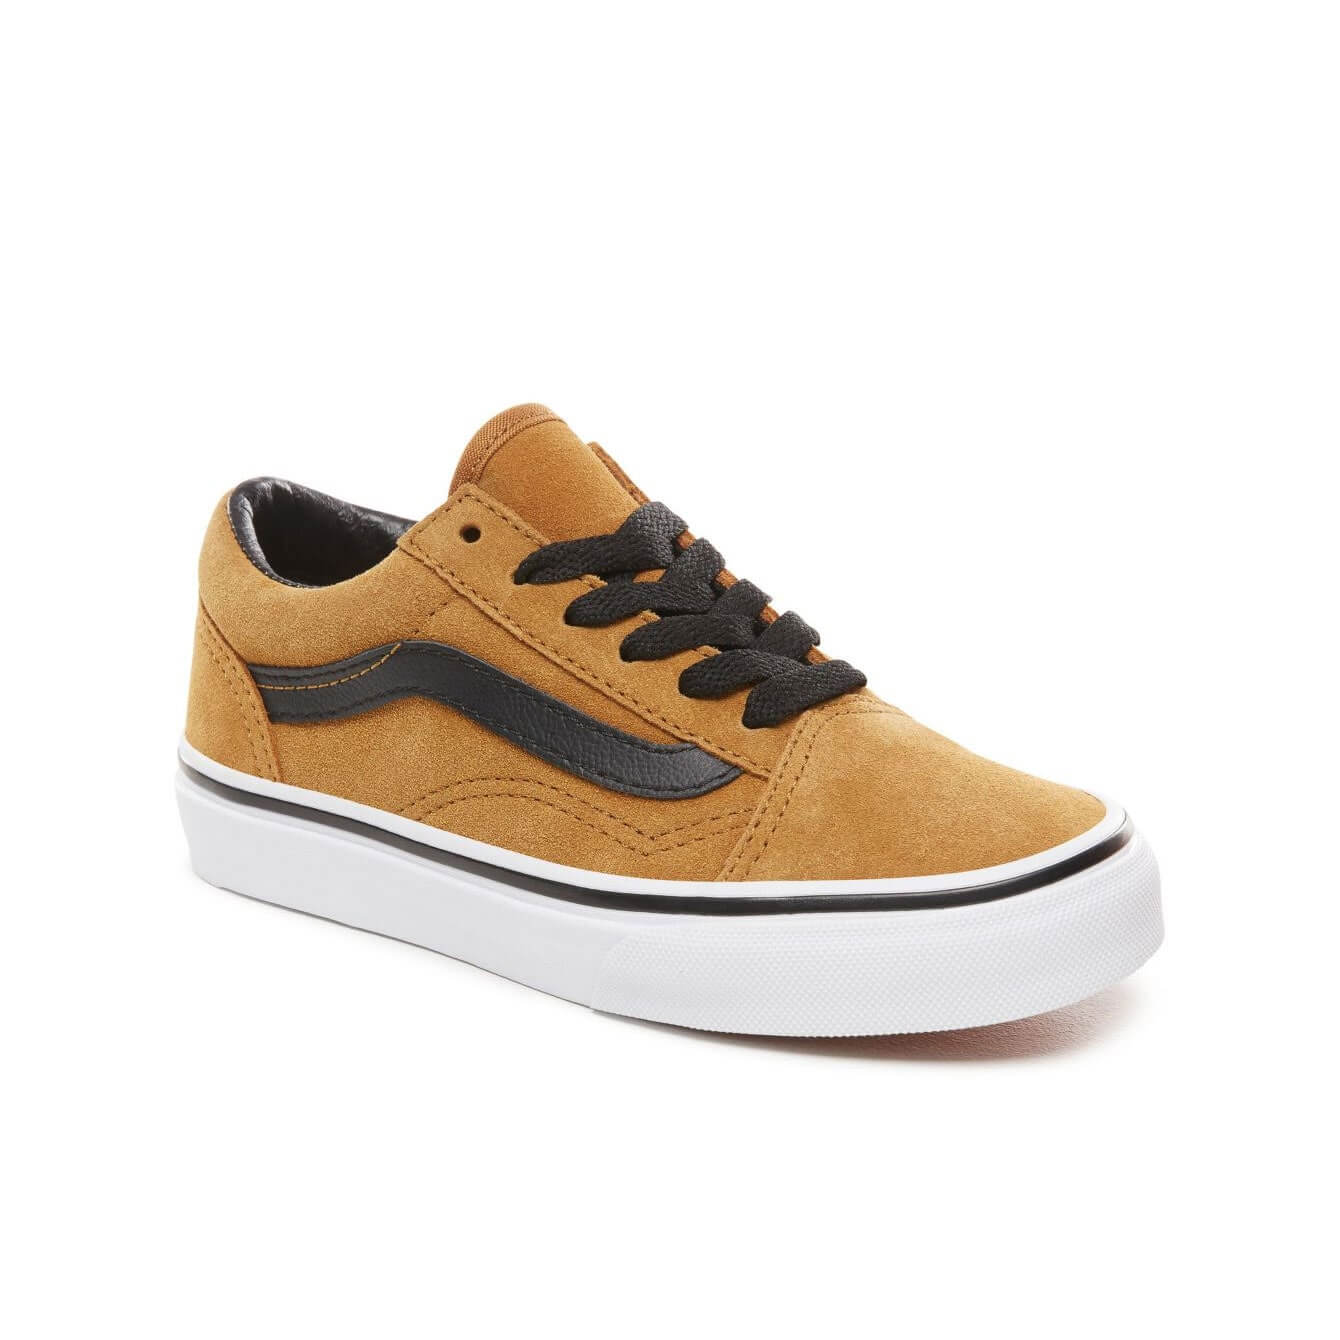 Vans Kids Old Skool V Shoes - Cumin / Black (5+ yrs) - Angle